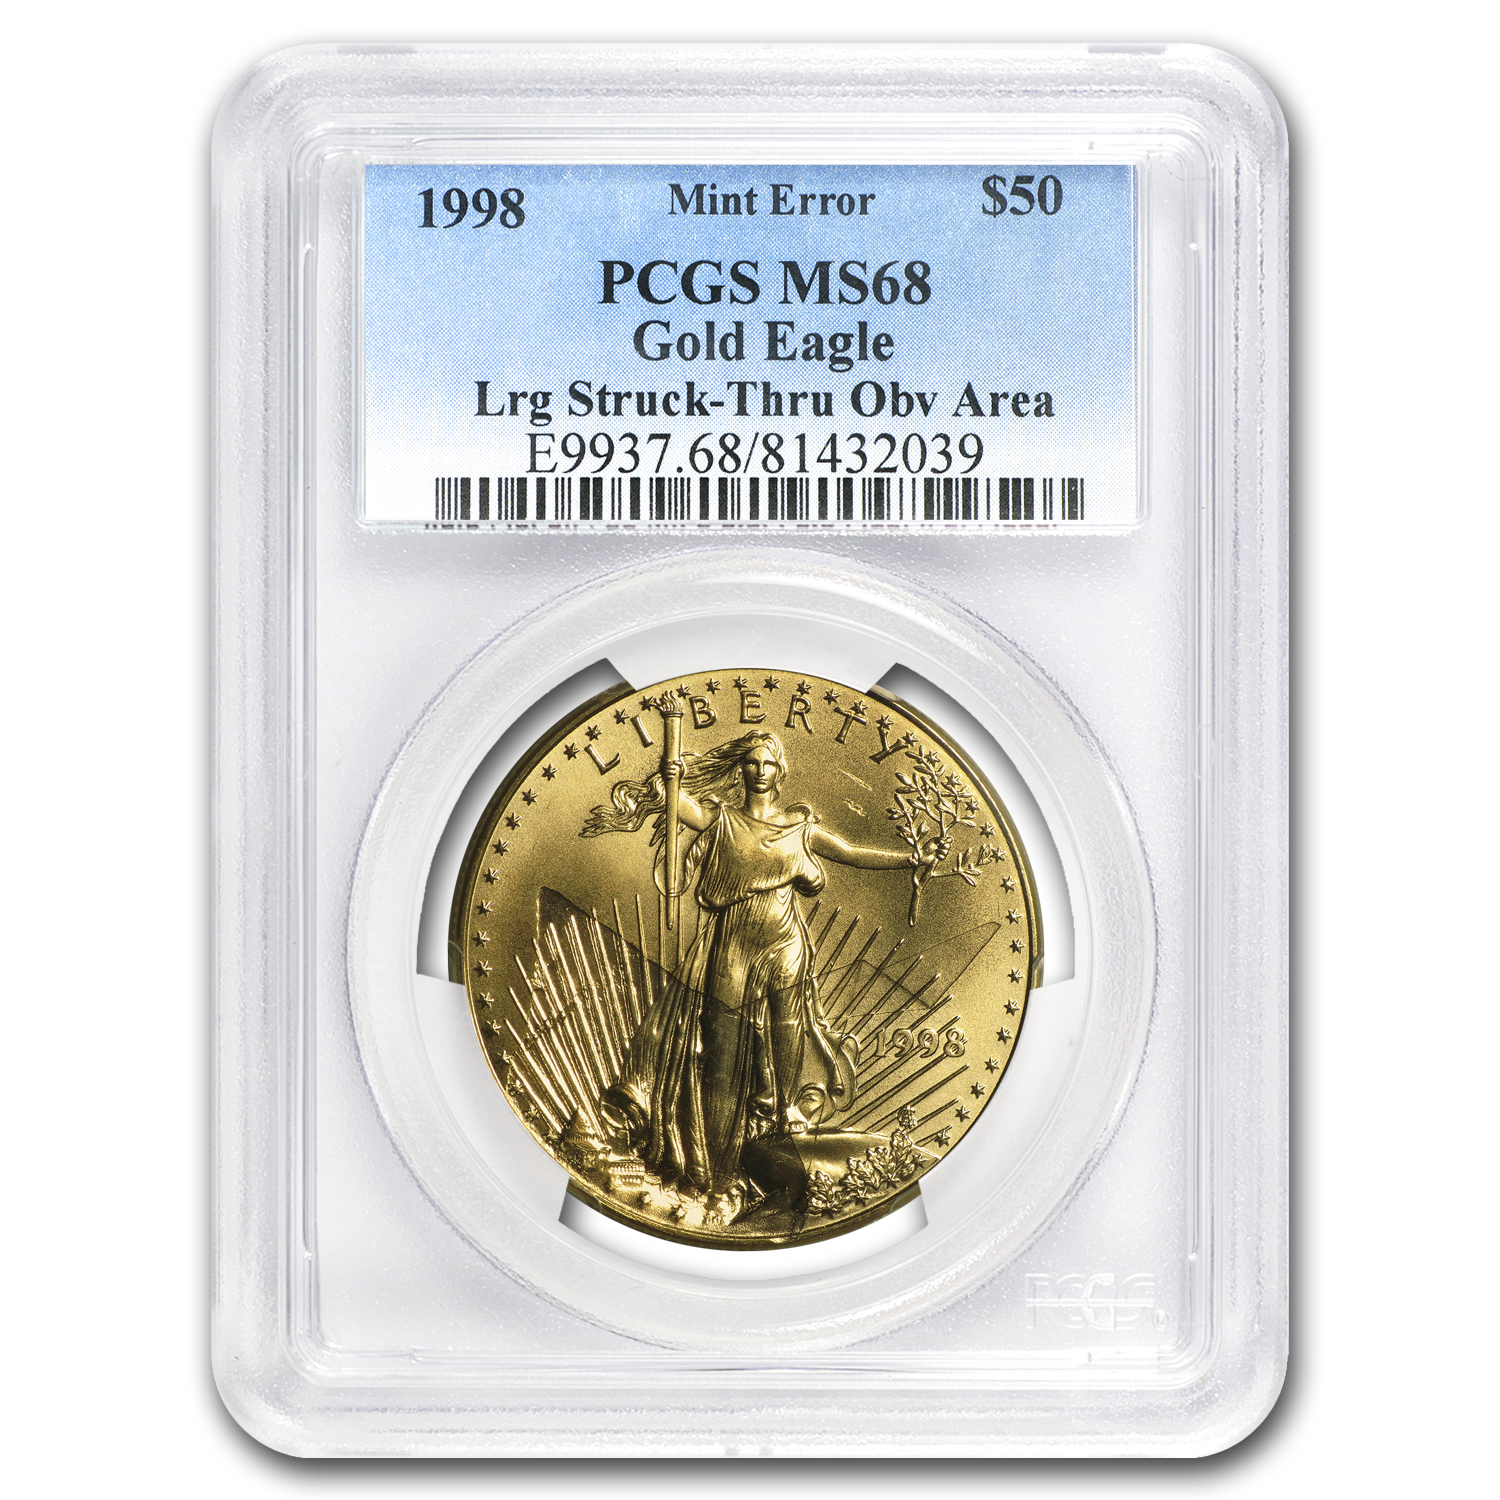 1998 1 oz Gold American Eagle MS-68 PCGS (Obv Mint Error)